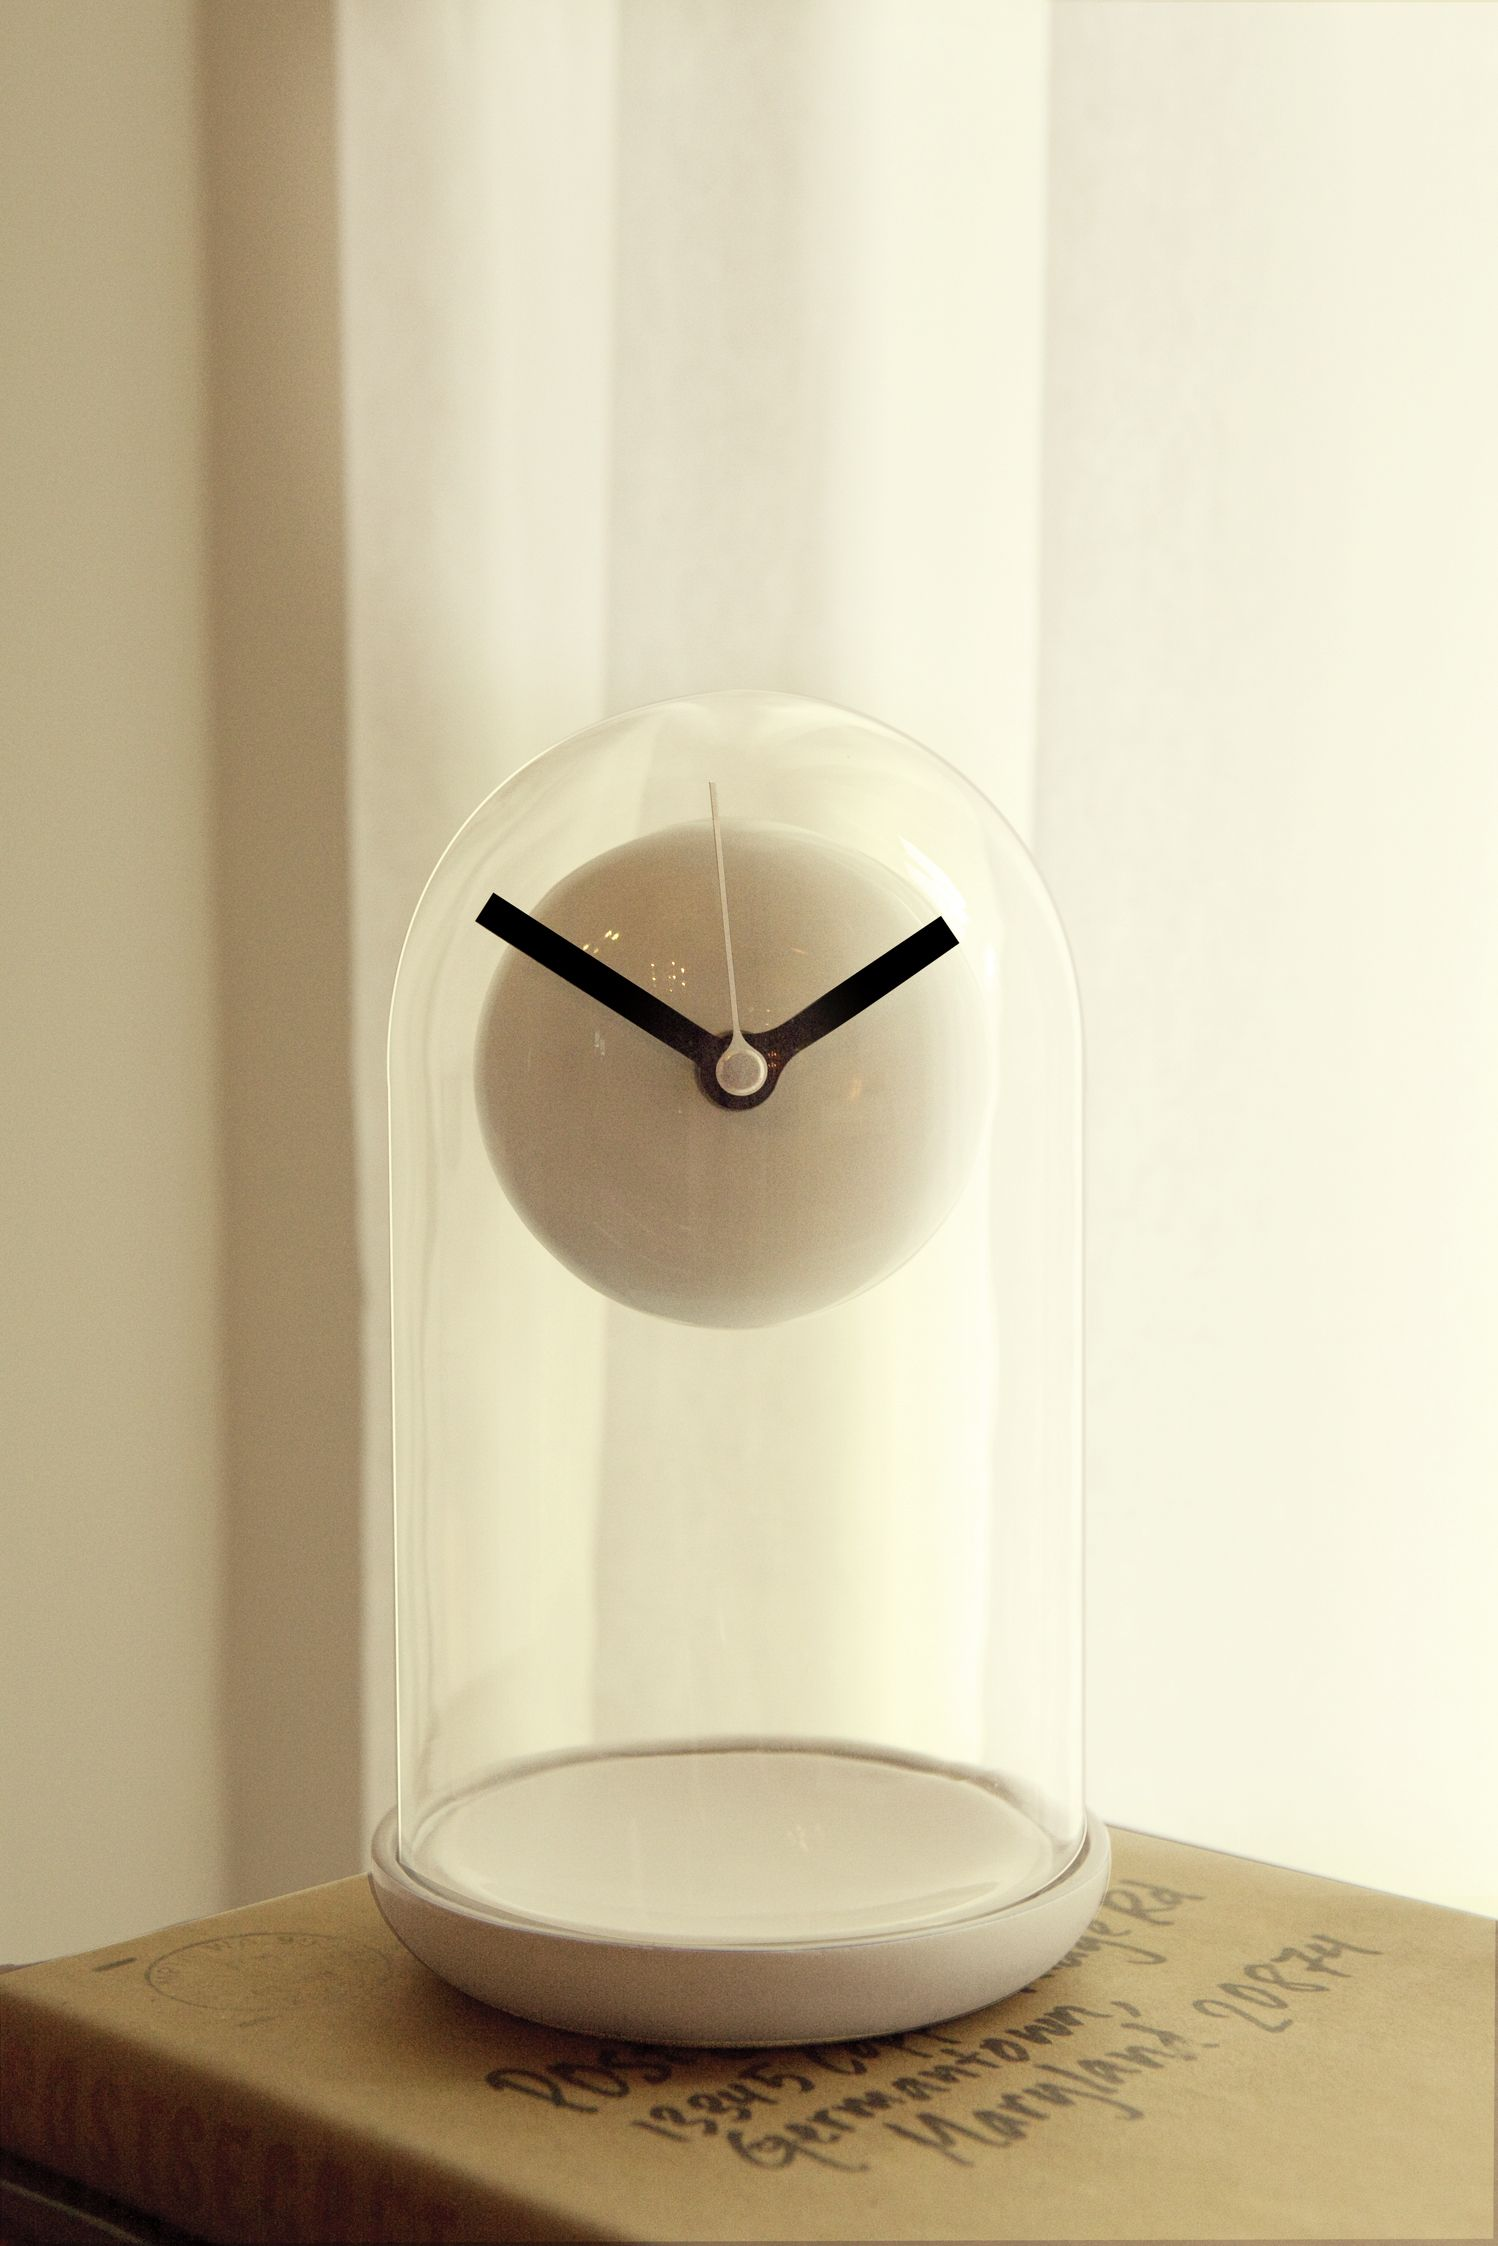 Cylinder Shape Clock Dome For Anniversary Clock or Display Dome For Other Items